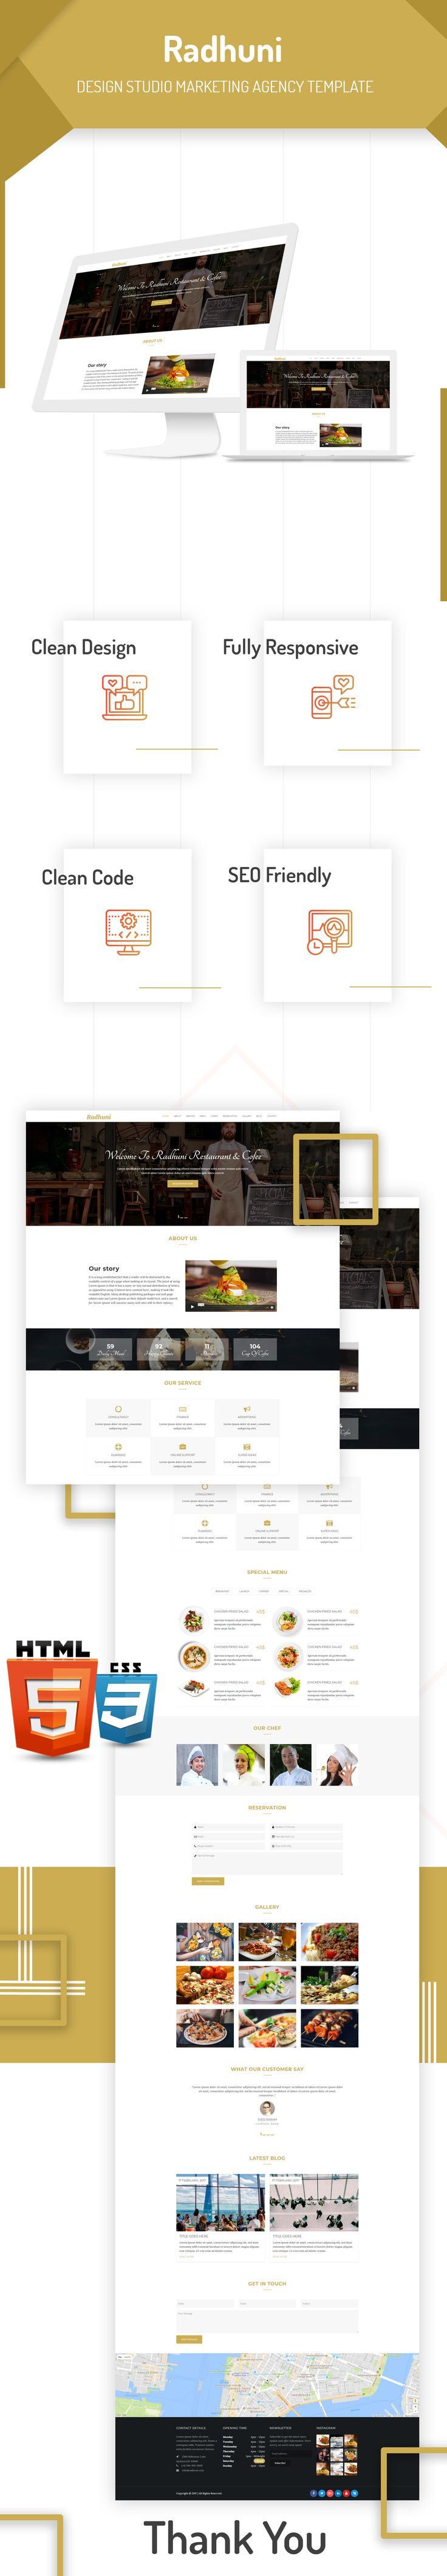 Radhuni is fully responsive, clean and flexible HTML template which suitable for Restaurant, Cafe, Bar or Bakery etc. This template created using the bootstrap framework with awesome features such as image slider, animated scrolling effect, google map and dynamic contact form. If you think you start a restaurant business then you can use this template. Radhuni – Restaurant & Coffee HTML Template gives you all the features to convert your visitor into customer and increase your sell.